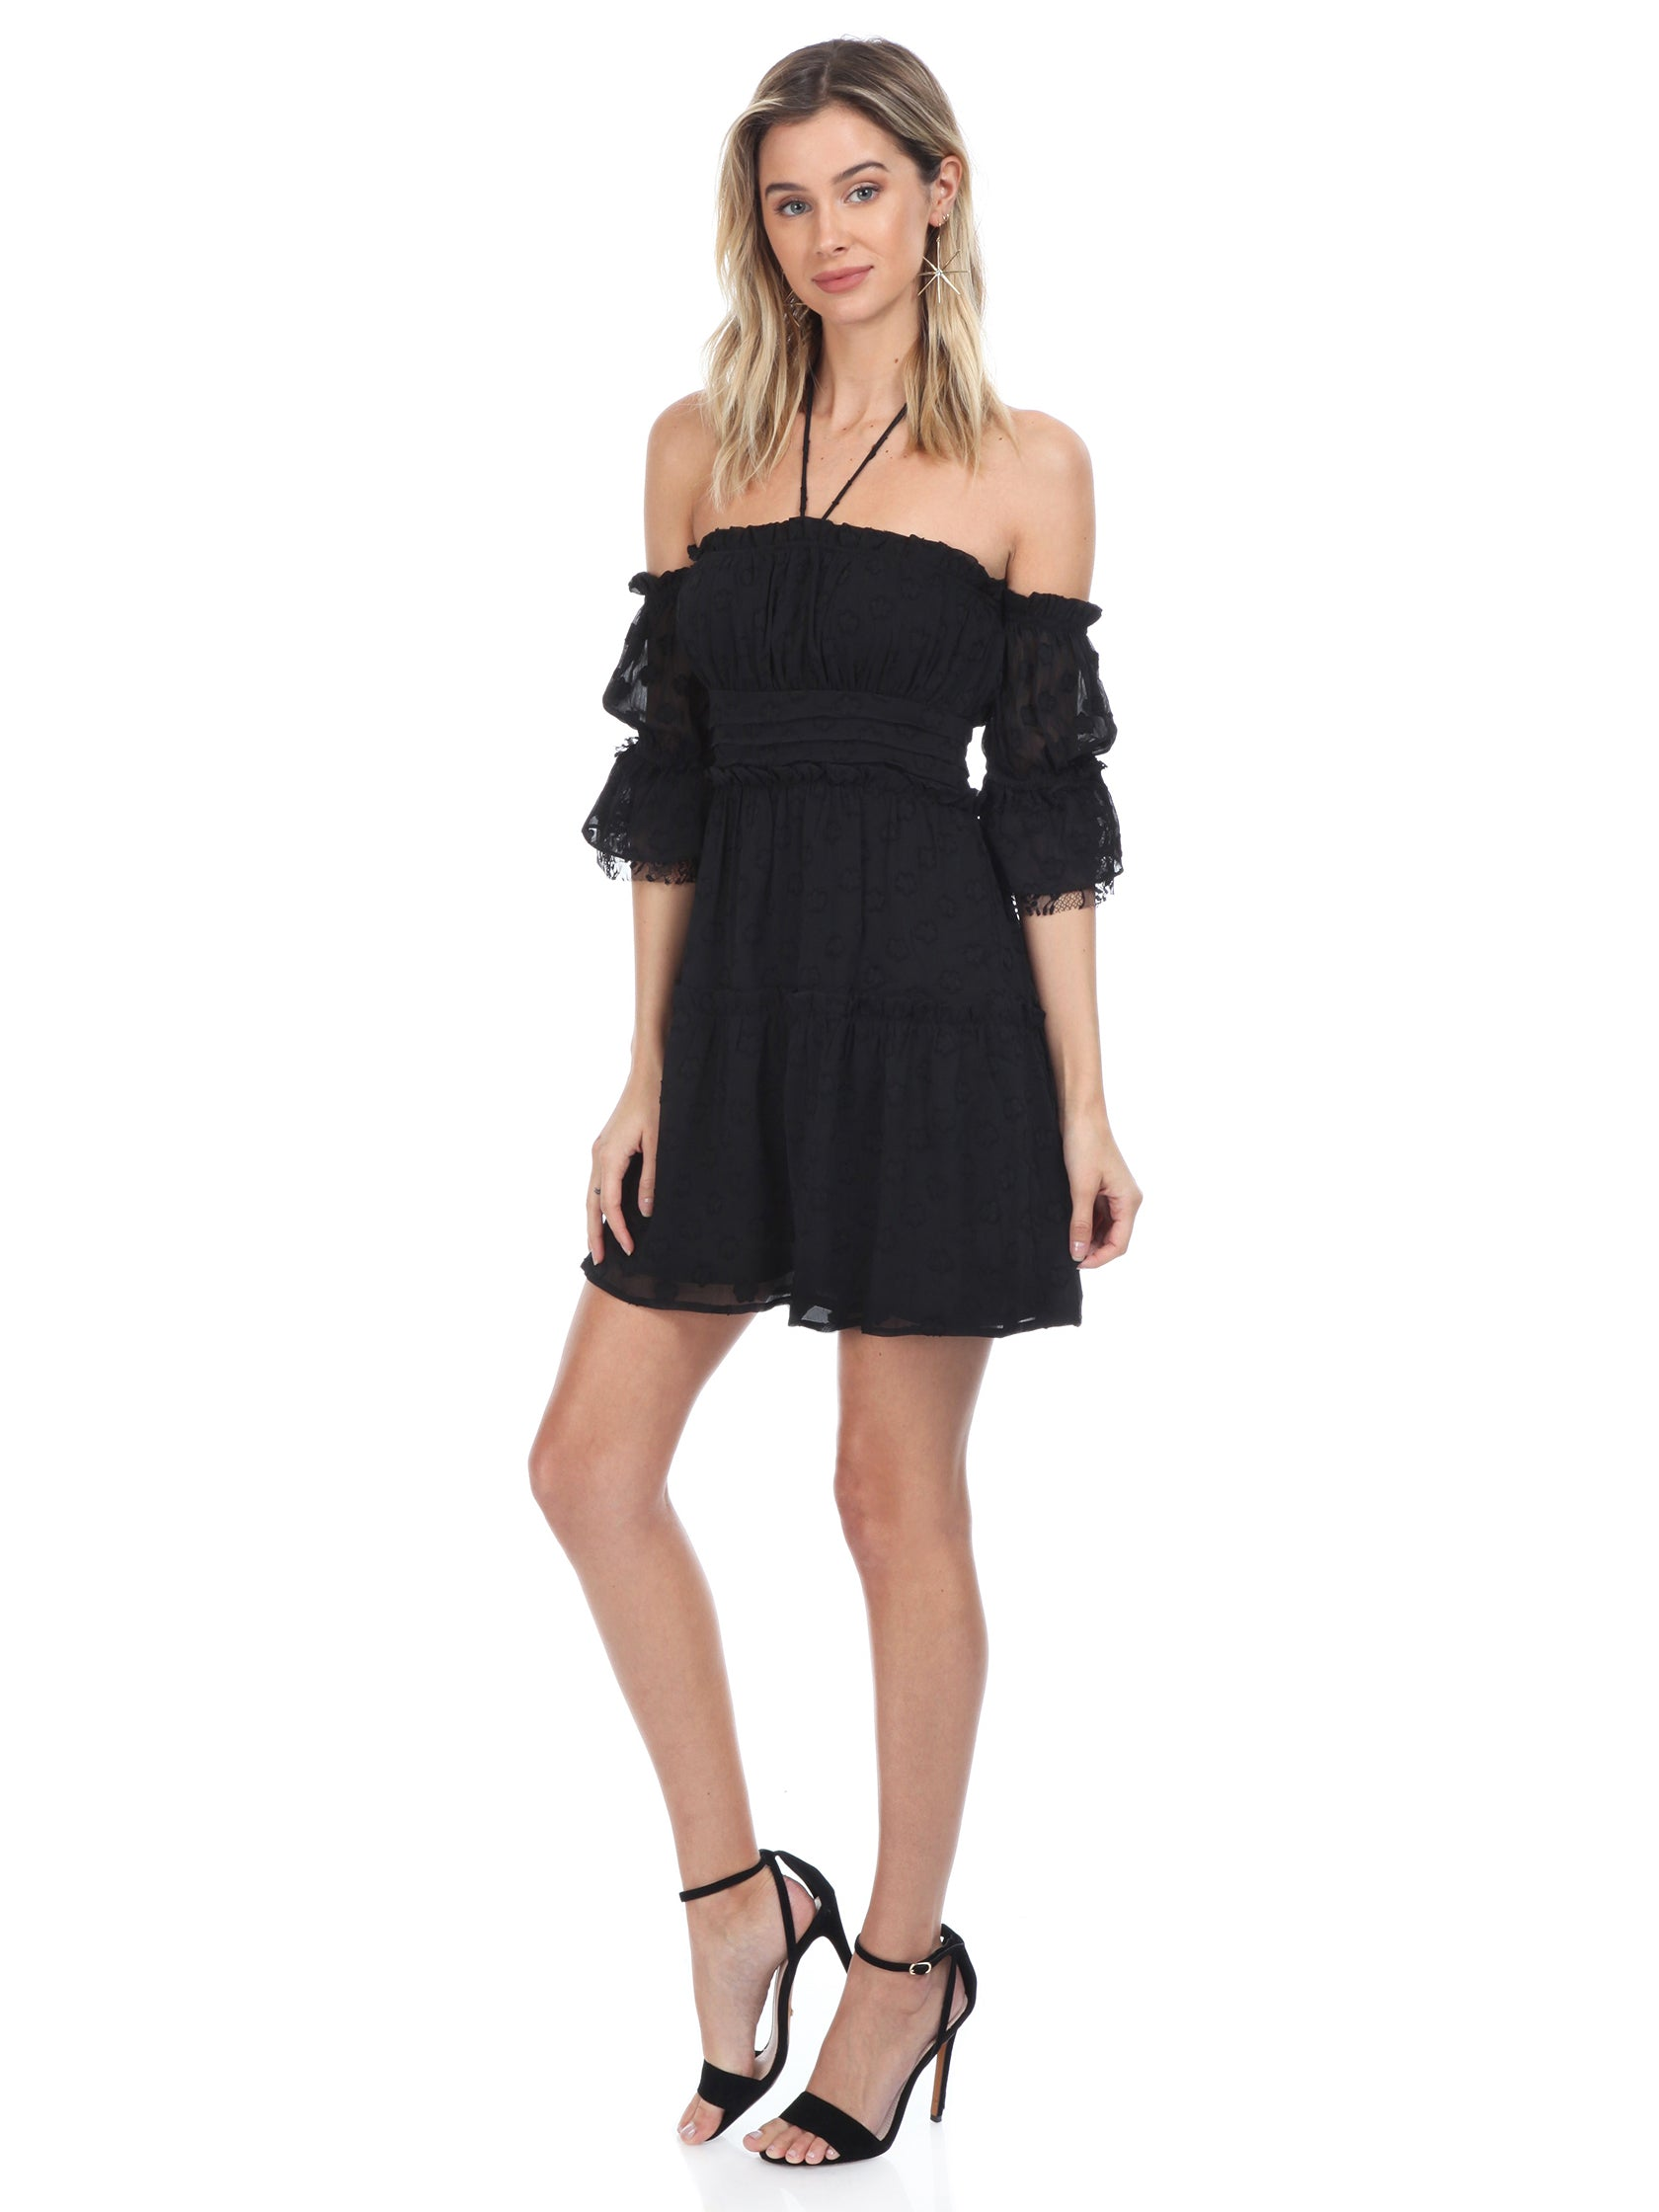 Woman wearing a dress rental from FashionPass called Jordan Ruffle Mini Dress